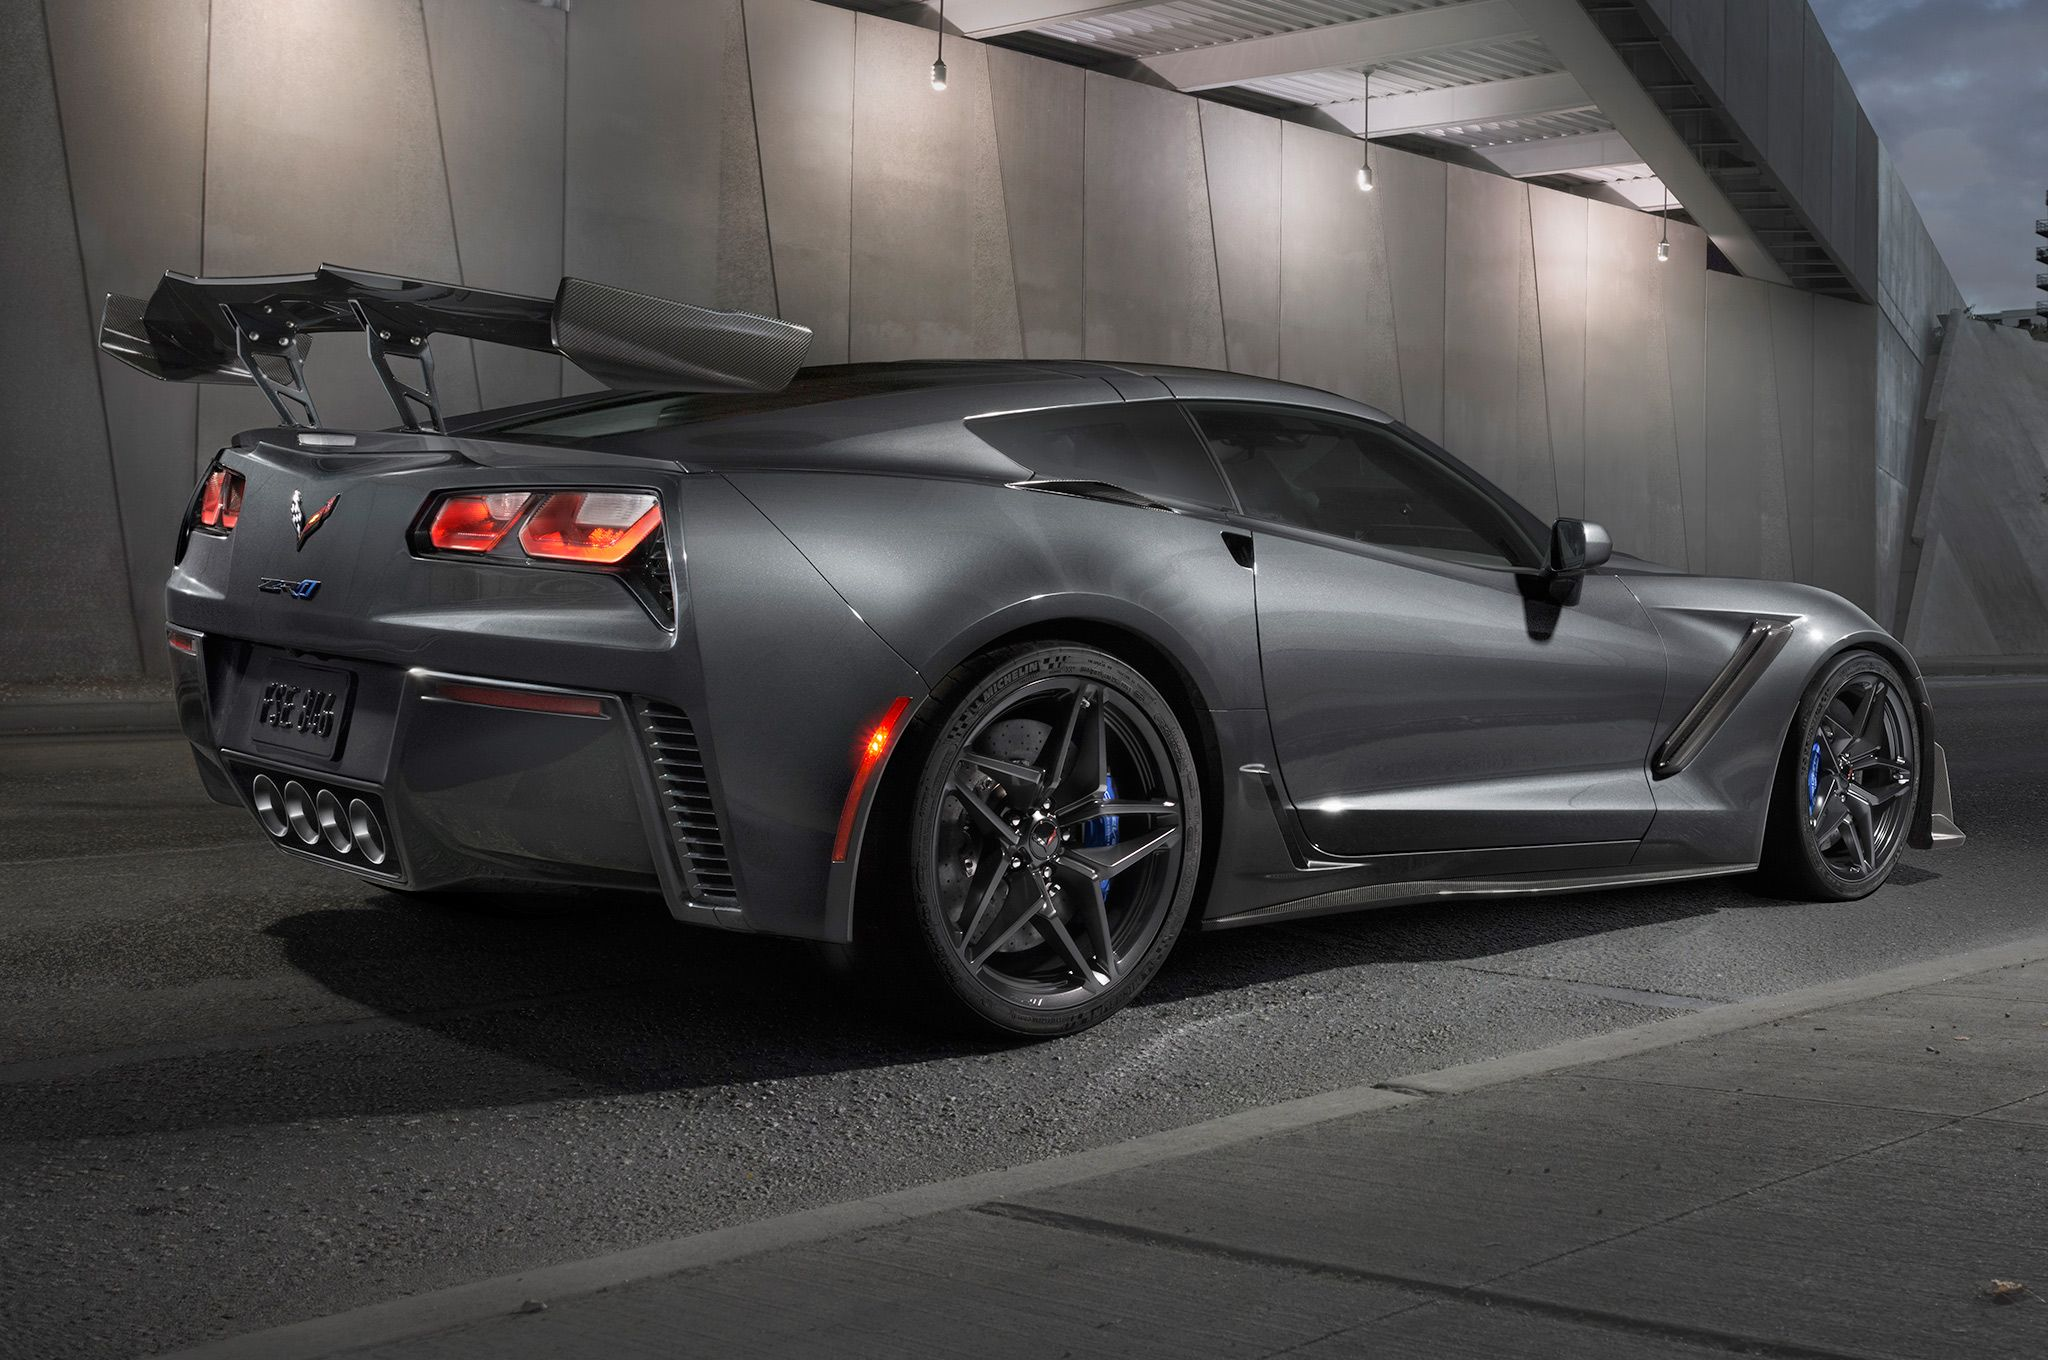 The 2019 Chevrolet Corvette ZR1 is the fastest most powerful